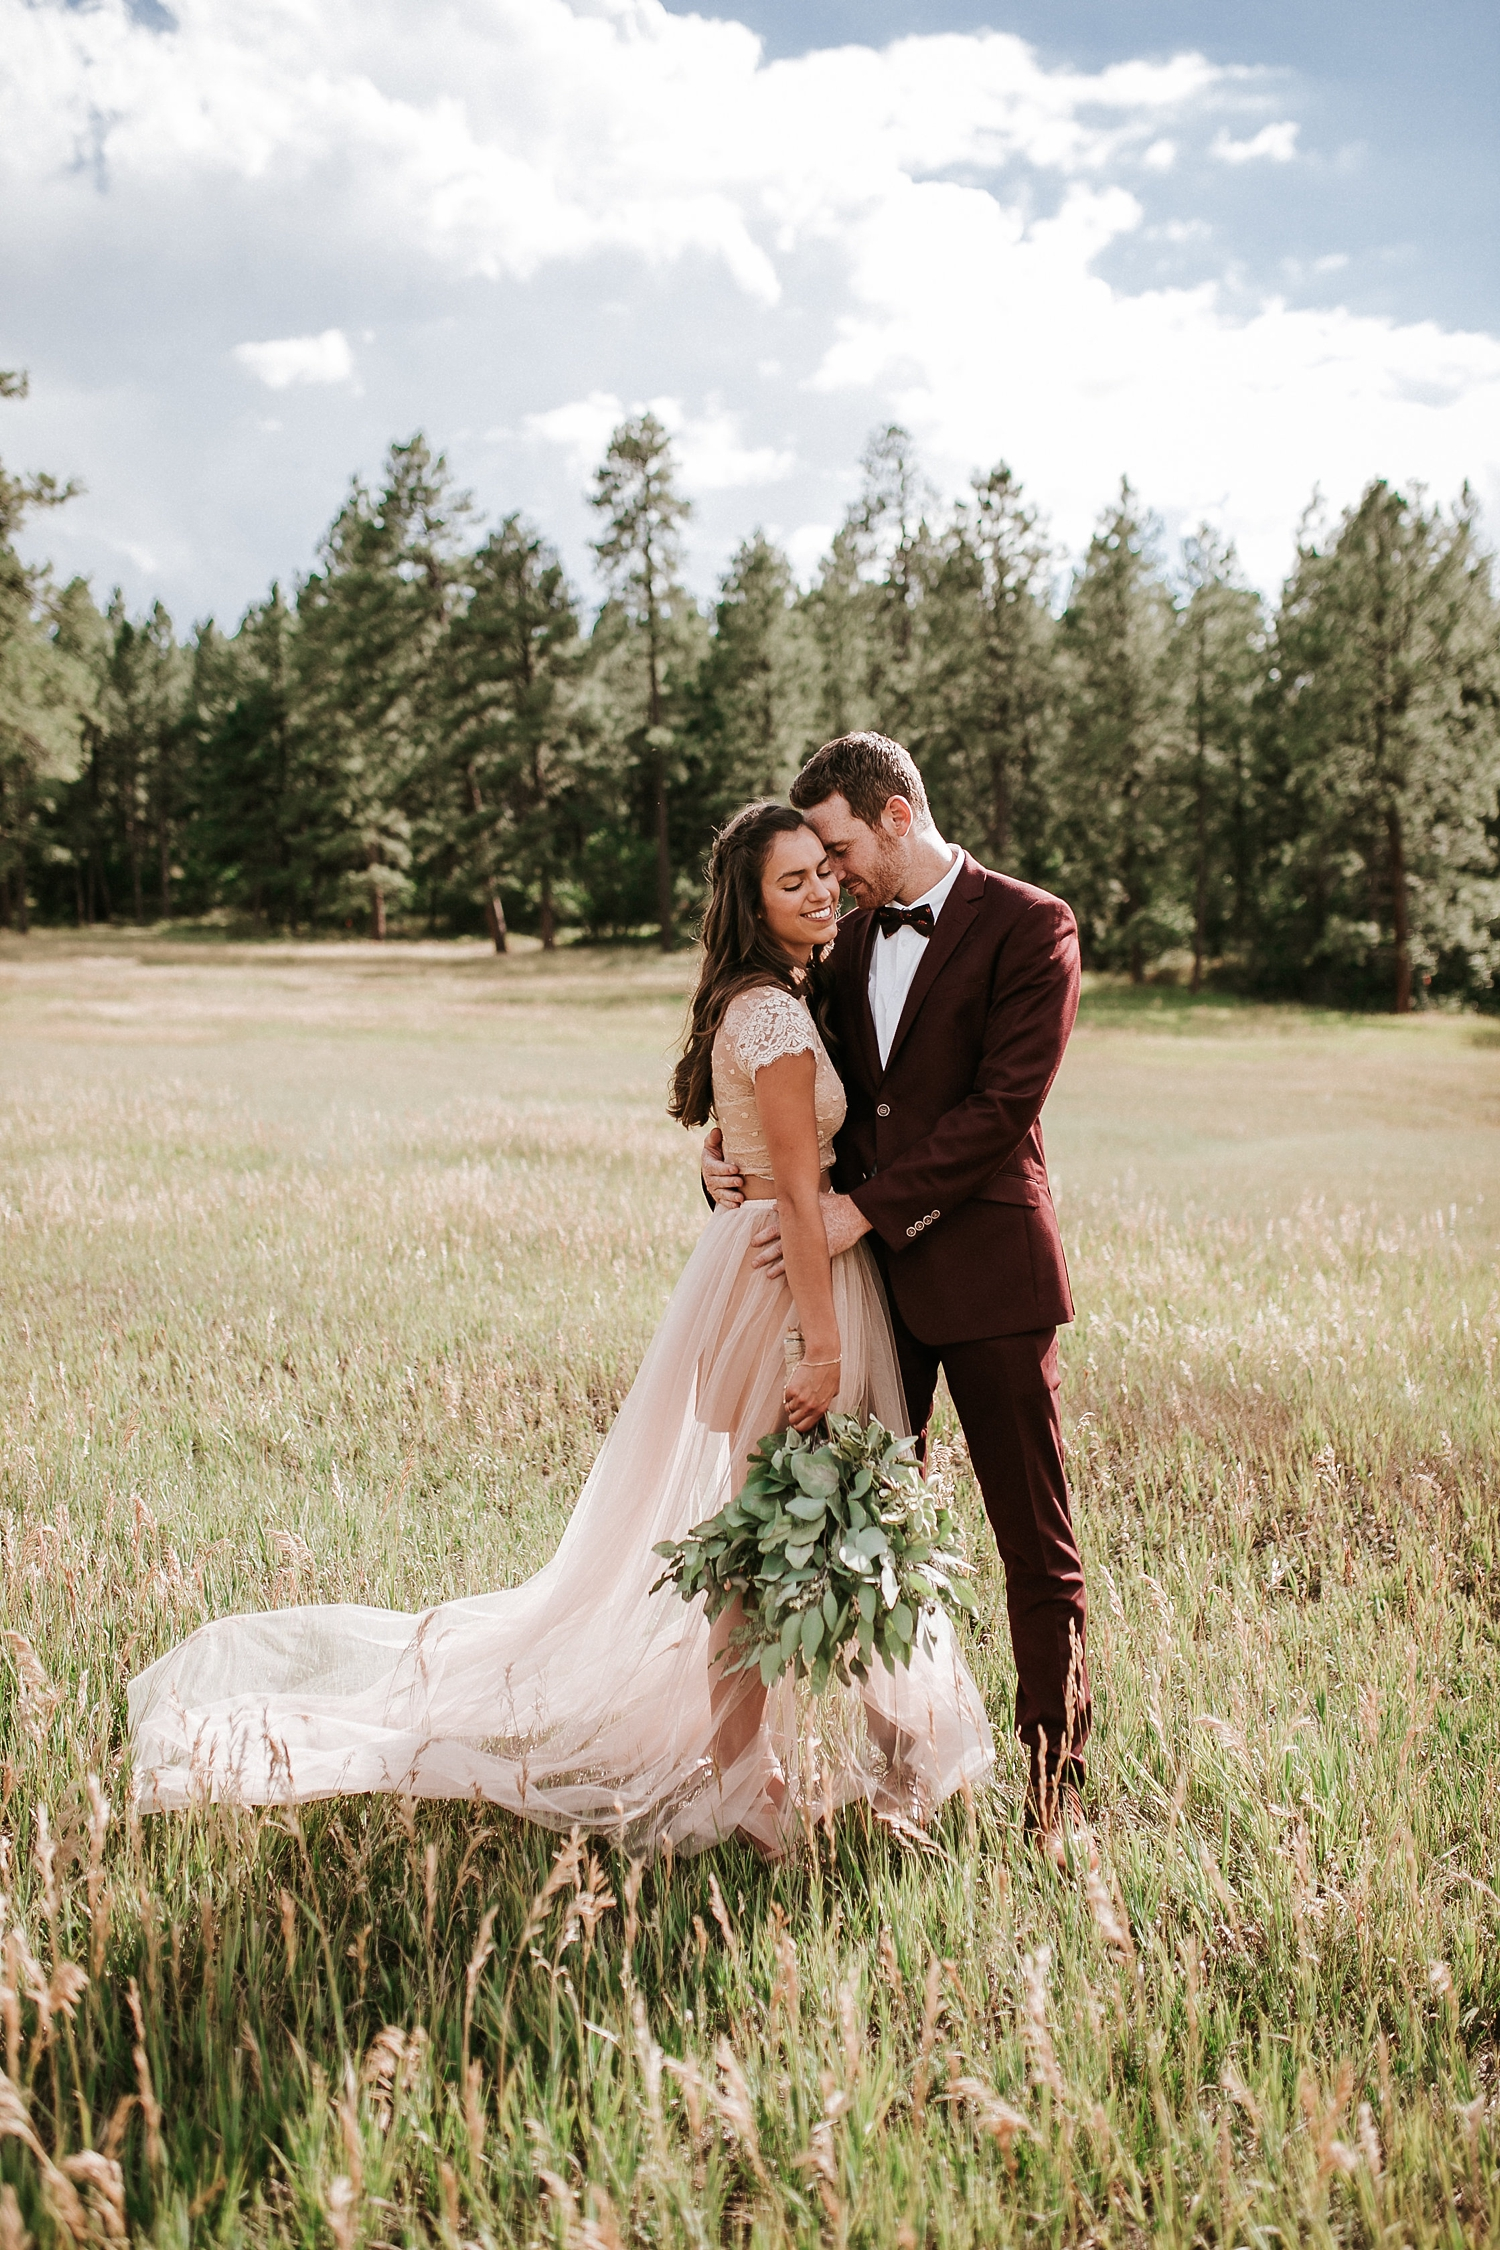 Alicia+lucia+photography+-+albuquerque+wedding+photographer+-+santa+fe+wedding+photography+-+new+mexico+wedding+photographer+-+pagosa+springs+wedding+-+destination+wedding_0037.jpg